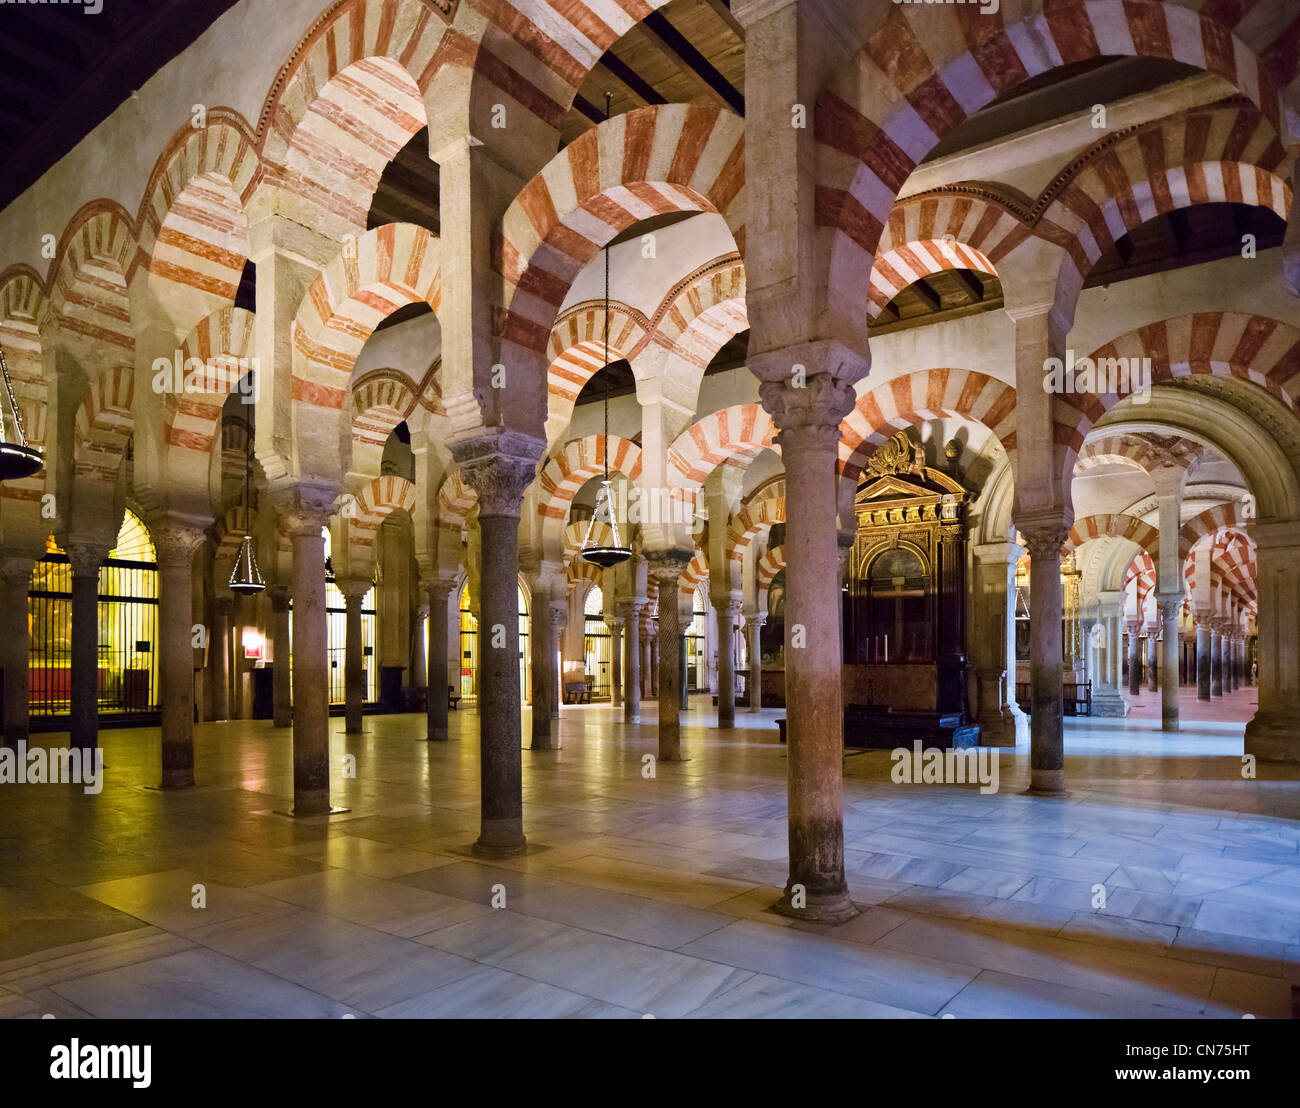 Interior of the mezquita cathedral mosque cordoba for Interior mezquita de cordoba